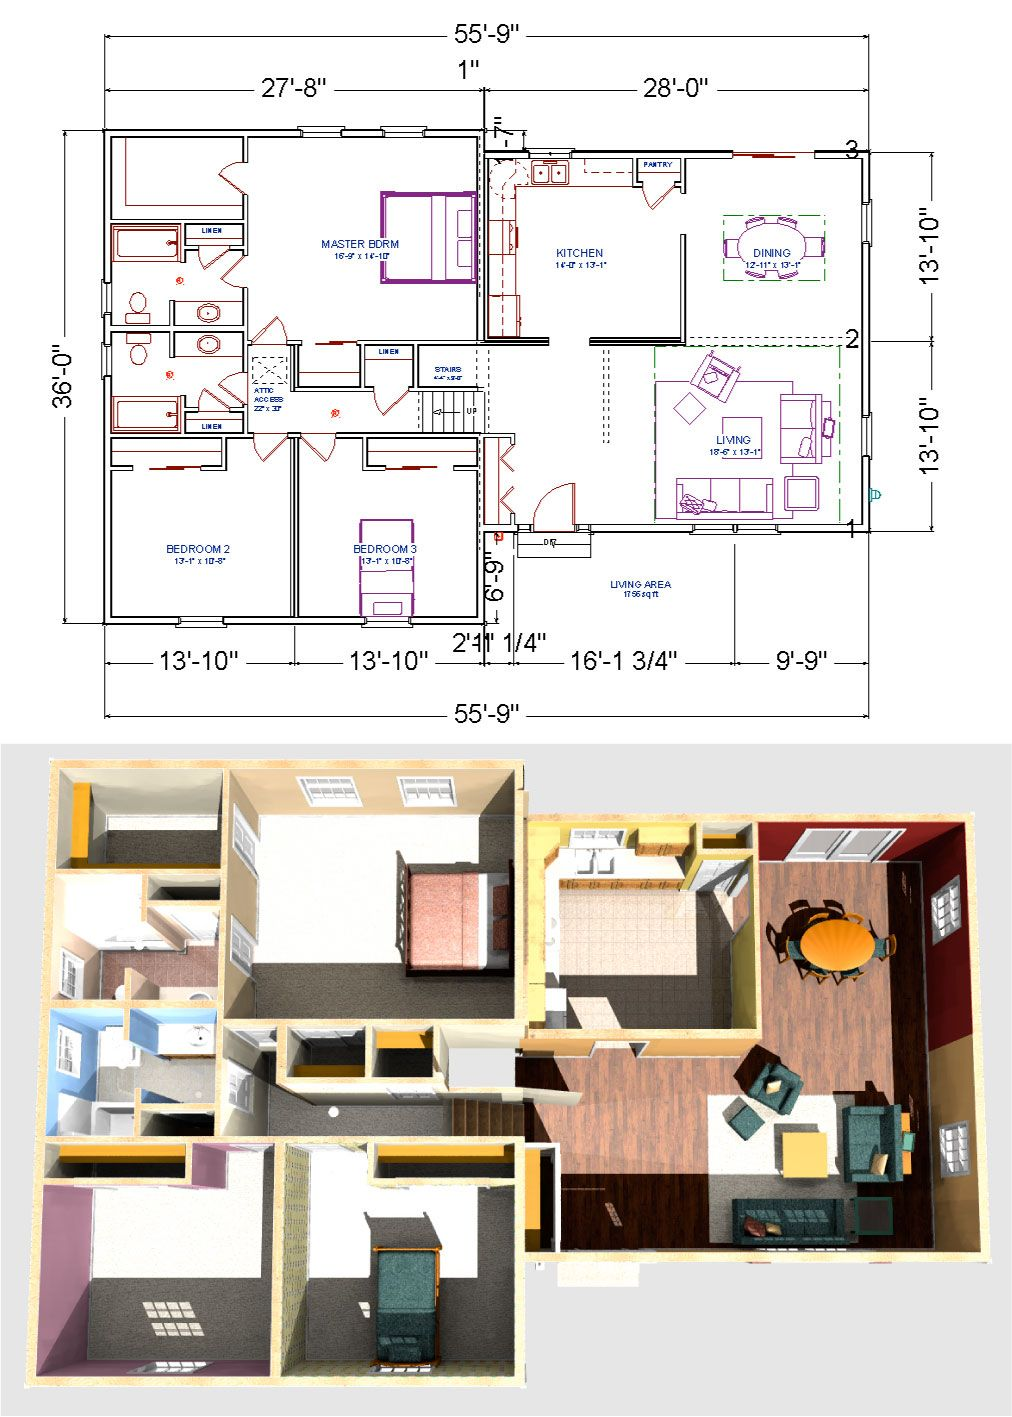 House Plans Home Plans Floor Plans Find House Plans At The Ranch House Designs Ranch Style Floor Plans Ranch Home Floor Plans